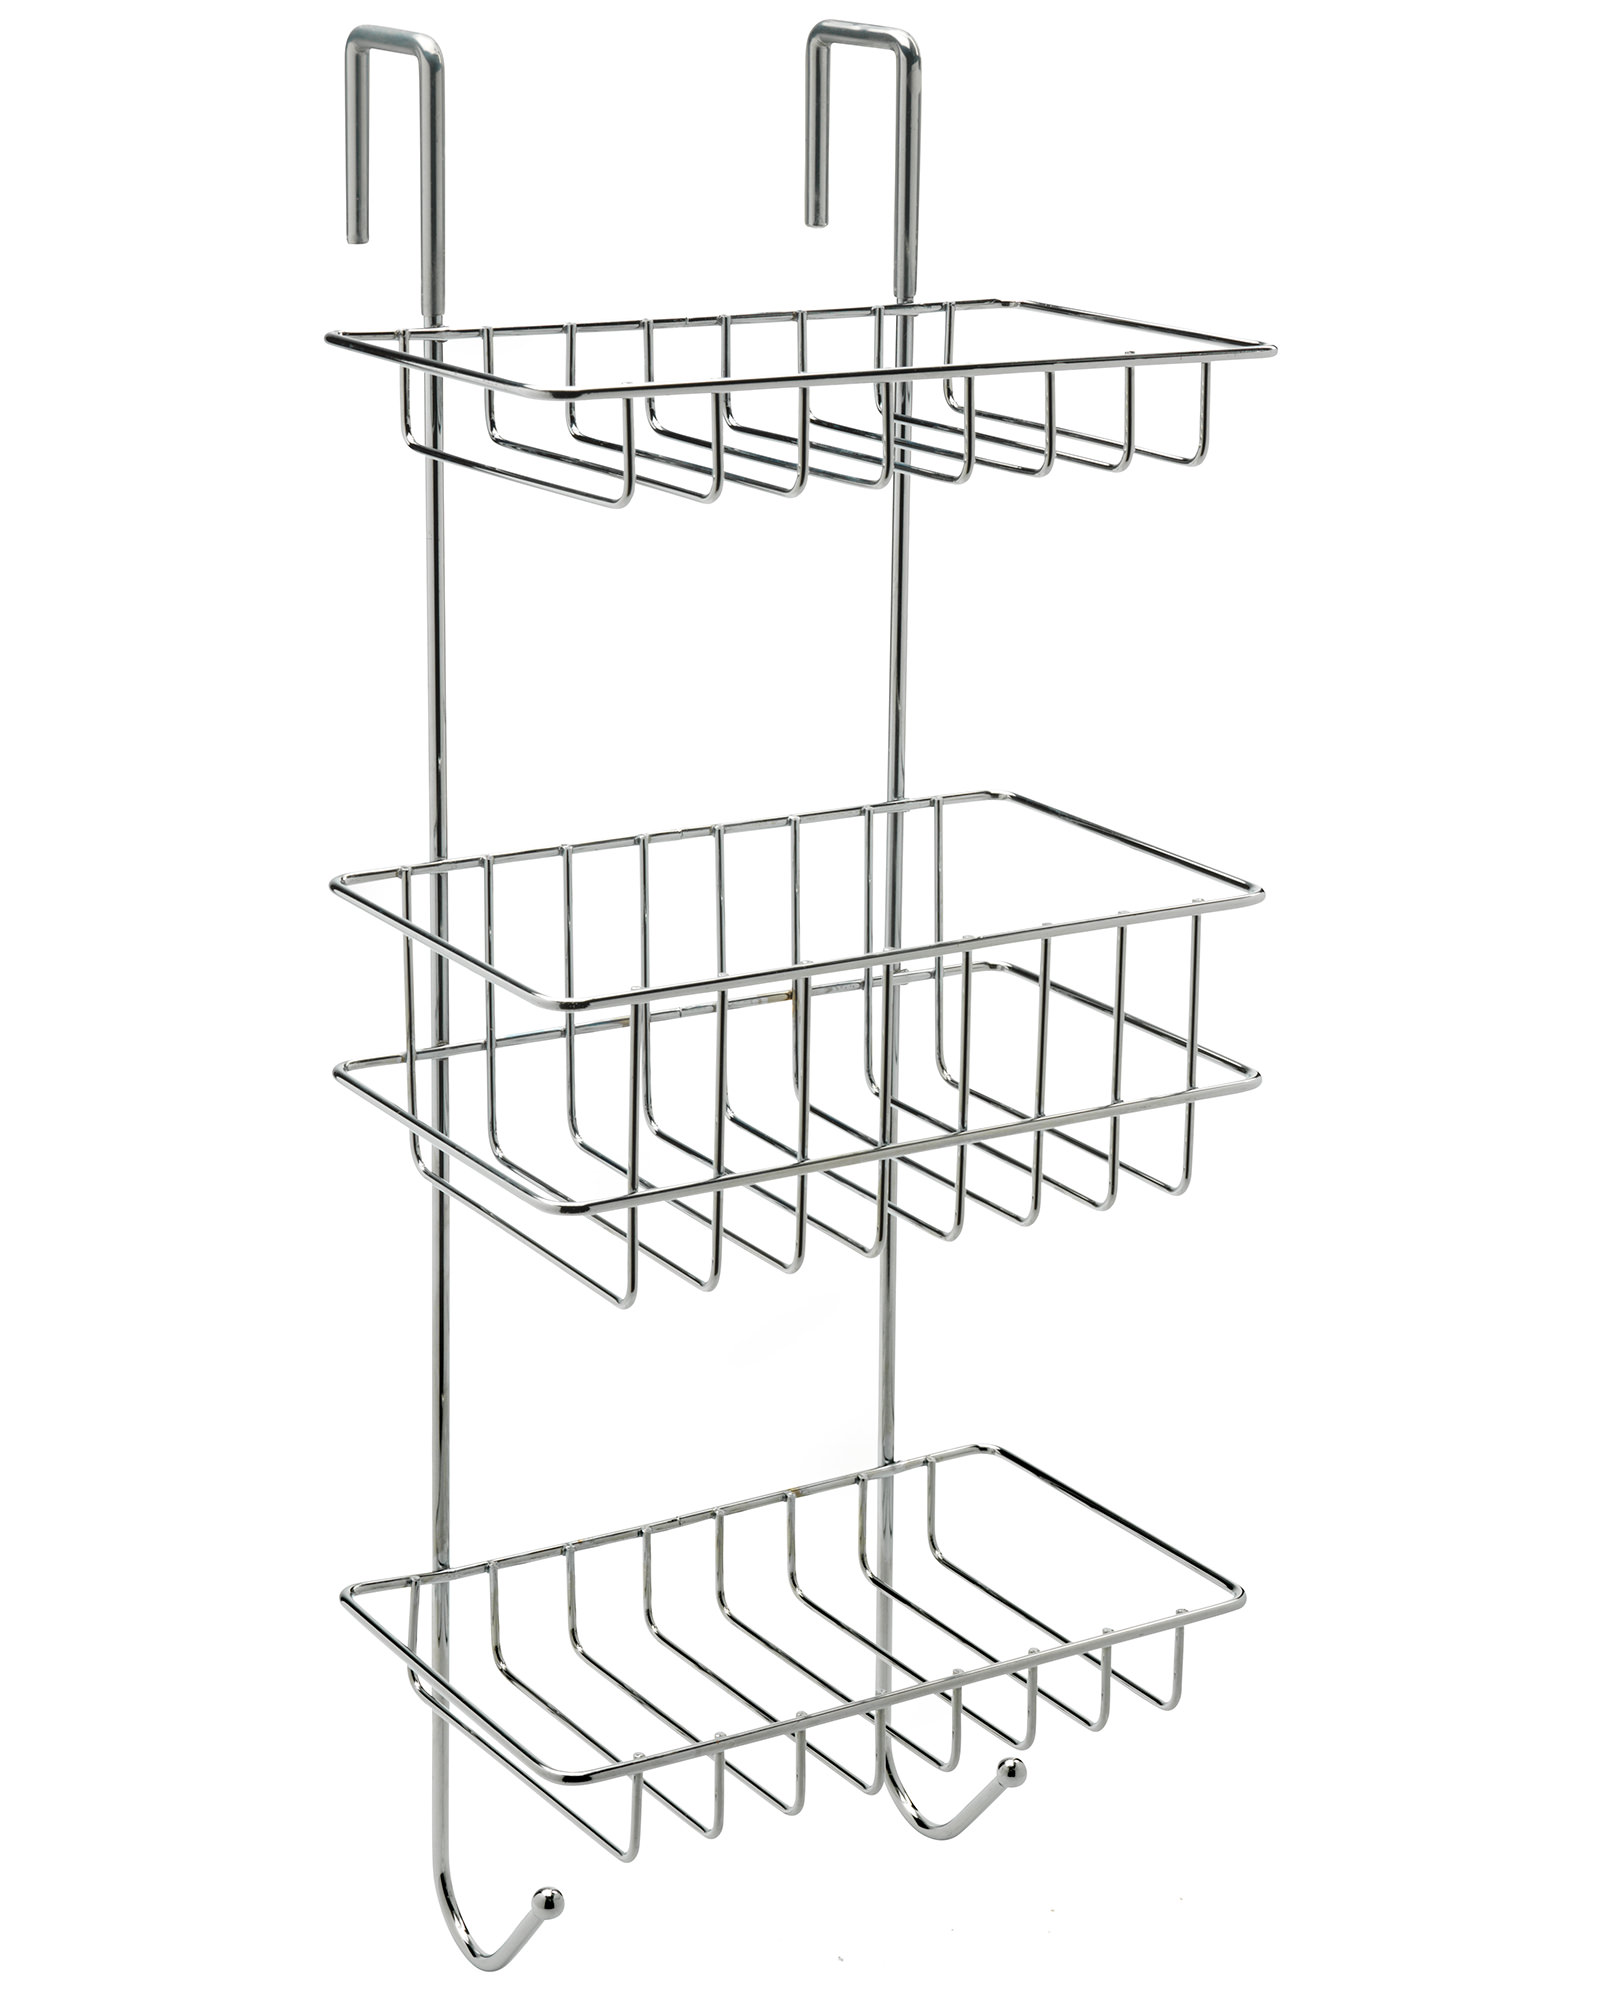 Sagittarius 225 x 185 x 570mm shelf tidy for shower for Shower cubicle shelves